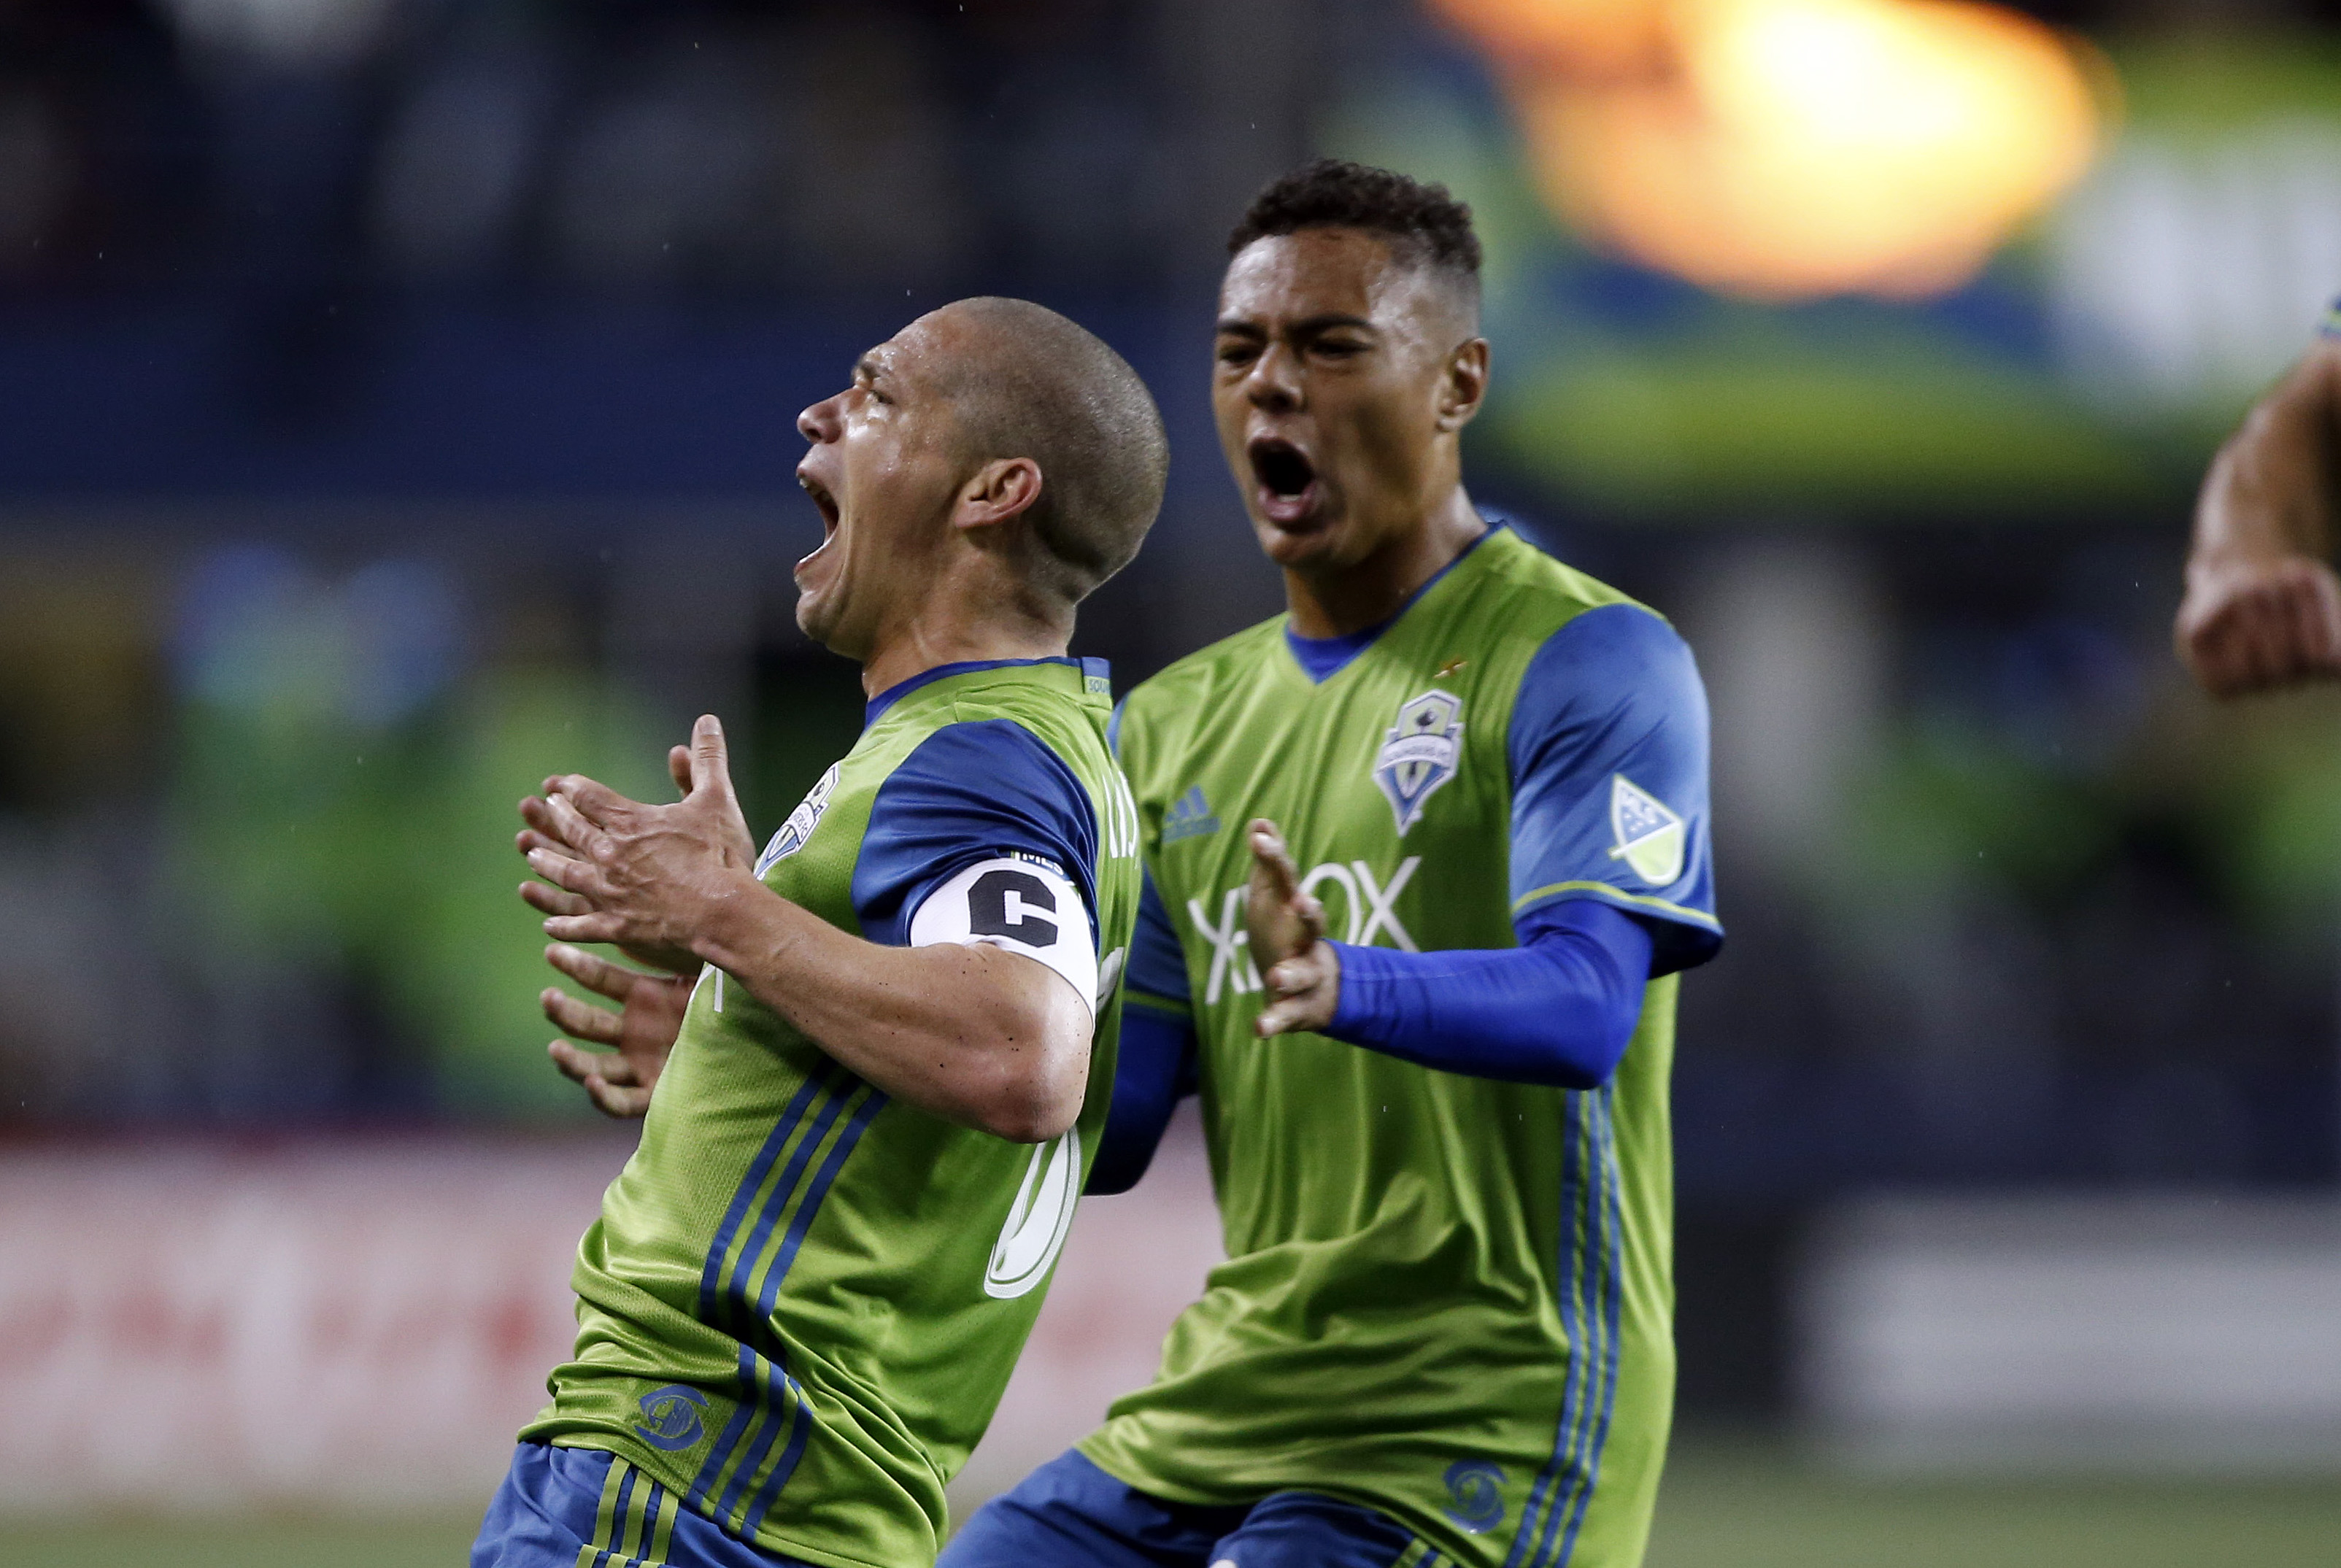 10036862-mls-new-england-revolution-at-seattle-sounders-fc